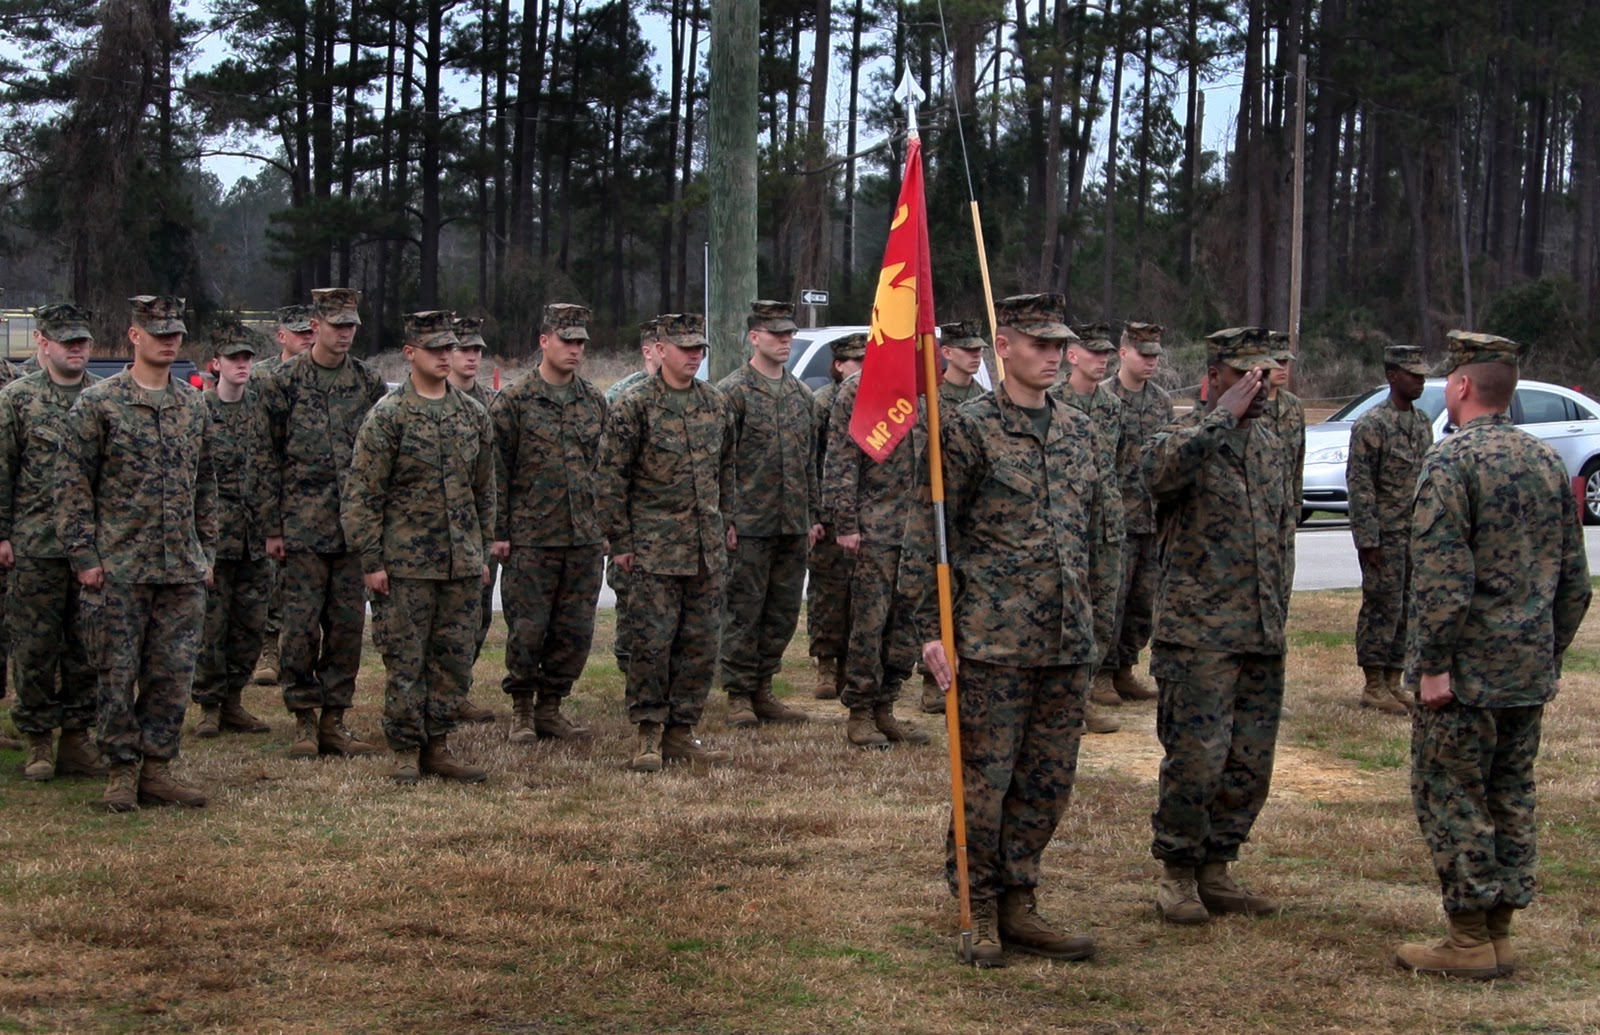 SNAFU!: USMC Military Police changing to Law Enforcement ...